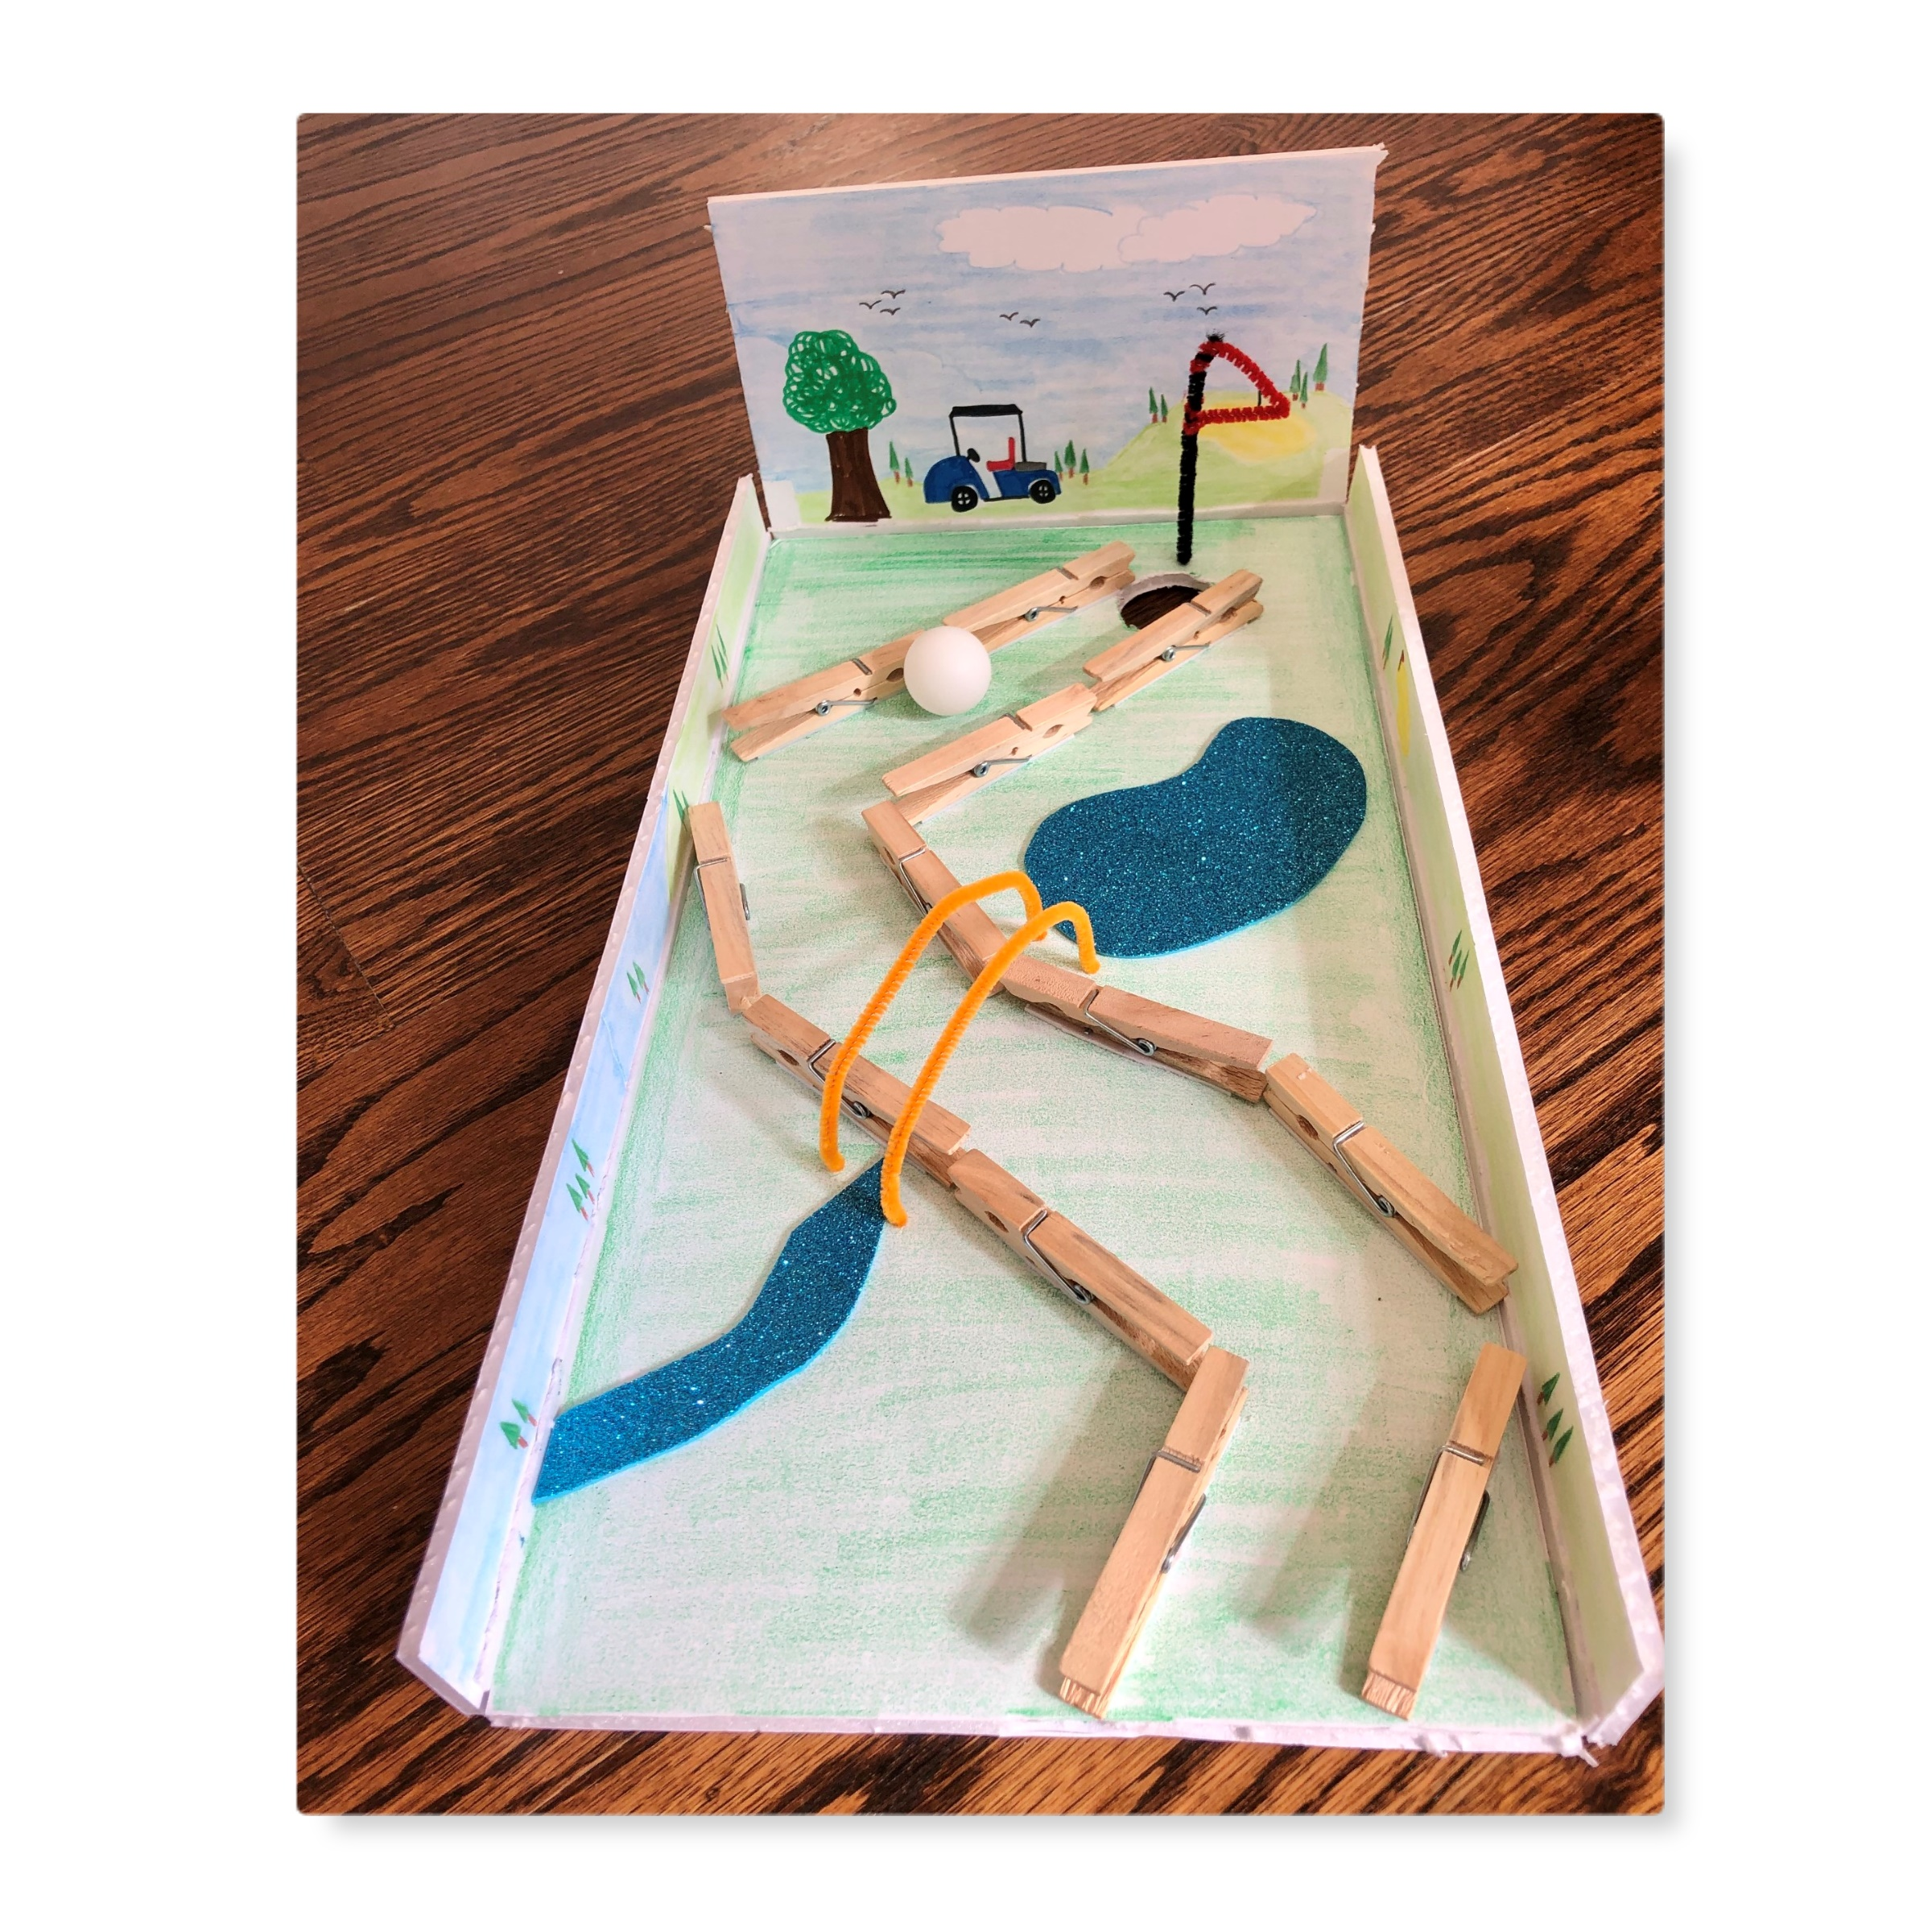 DIY Mini Golf Course Craft Kit